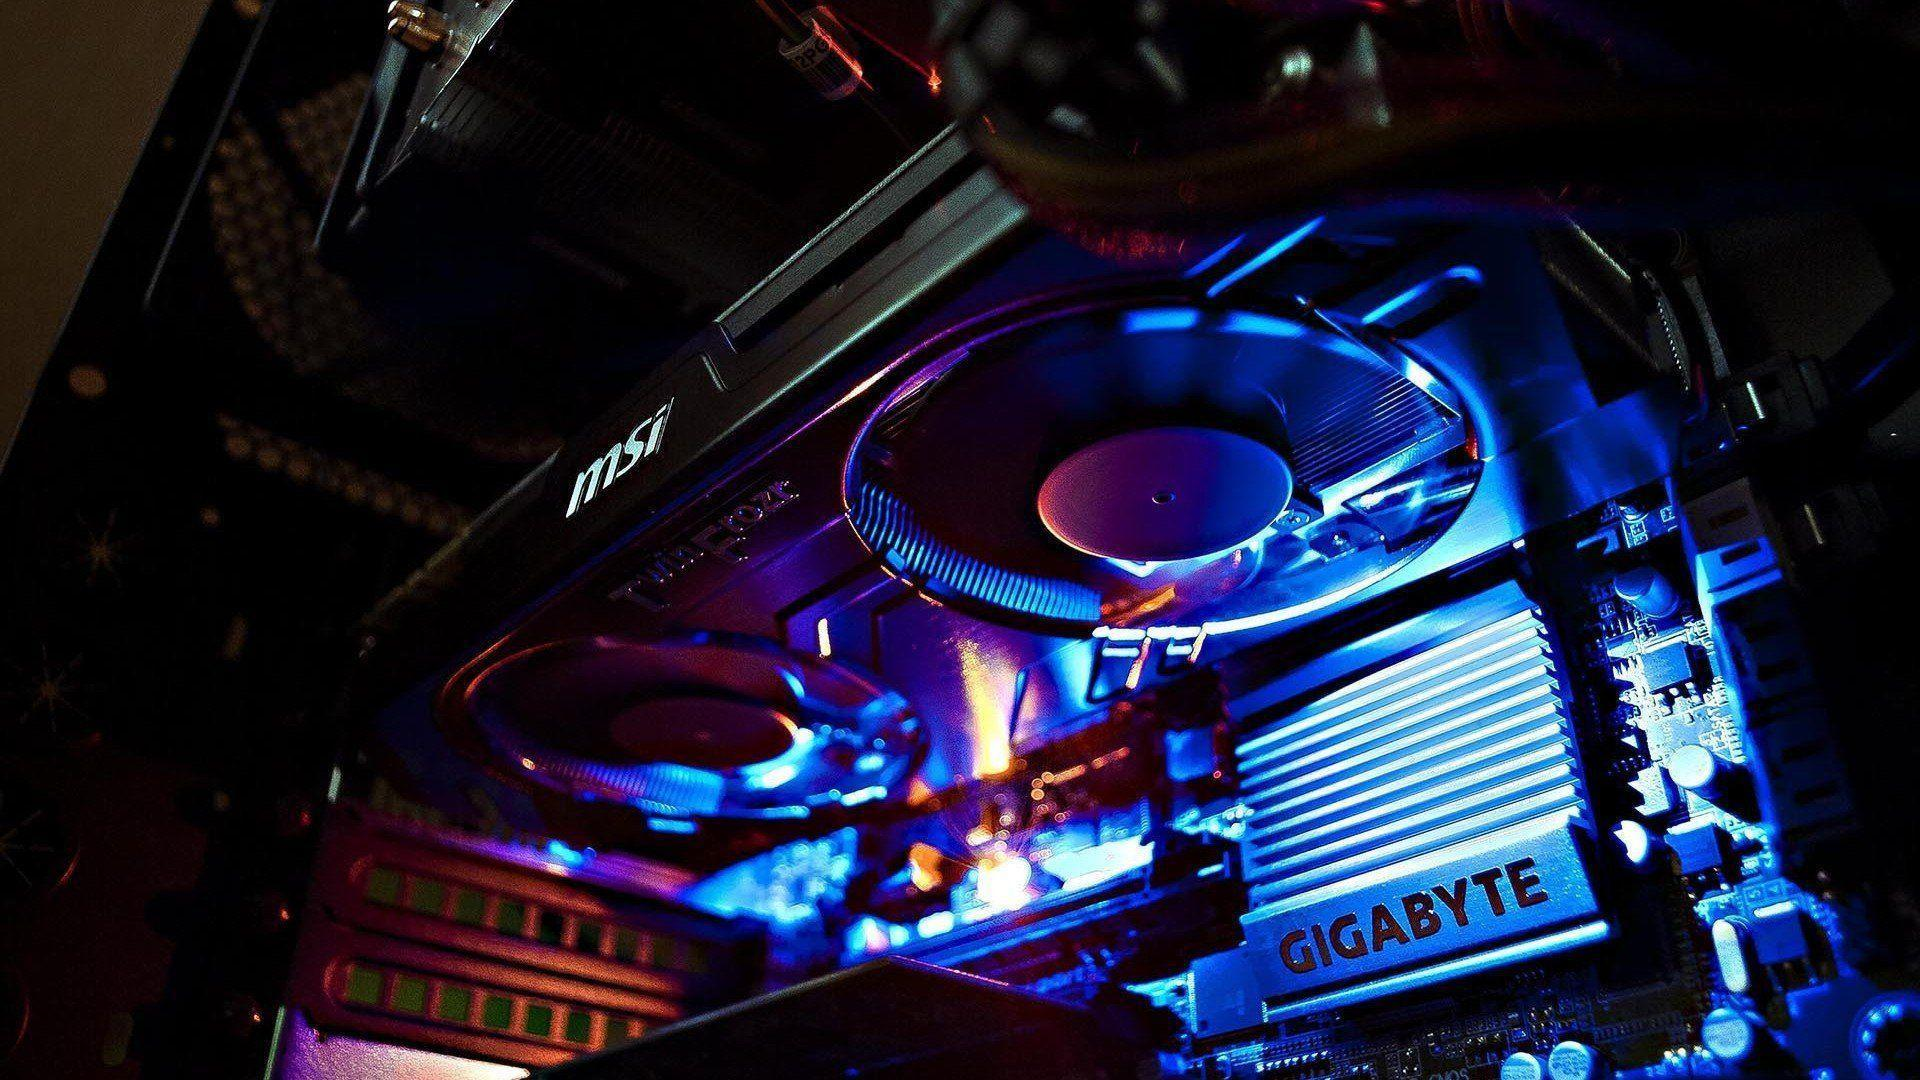 gigabyte motherboards computer wallpapers - photo #7